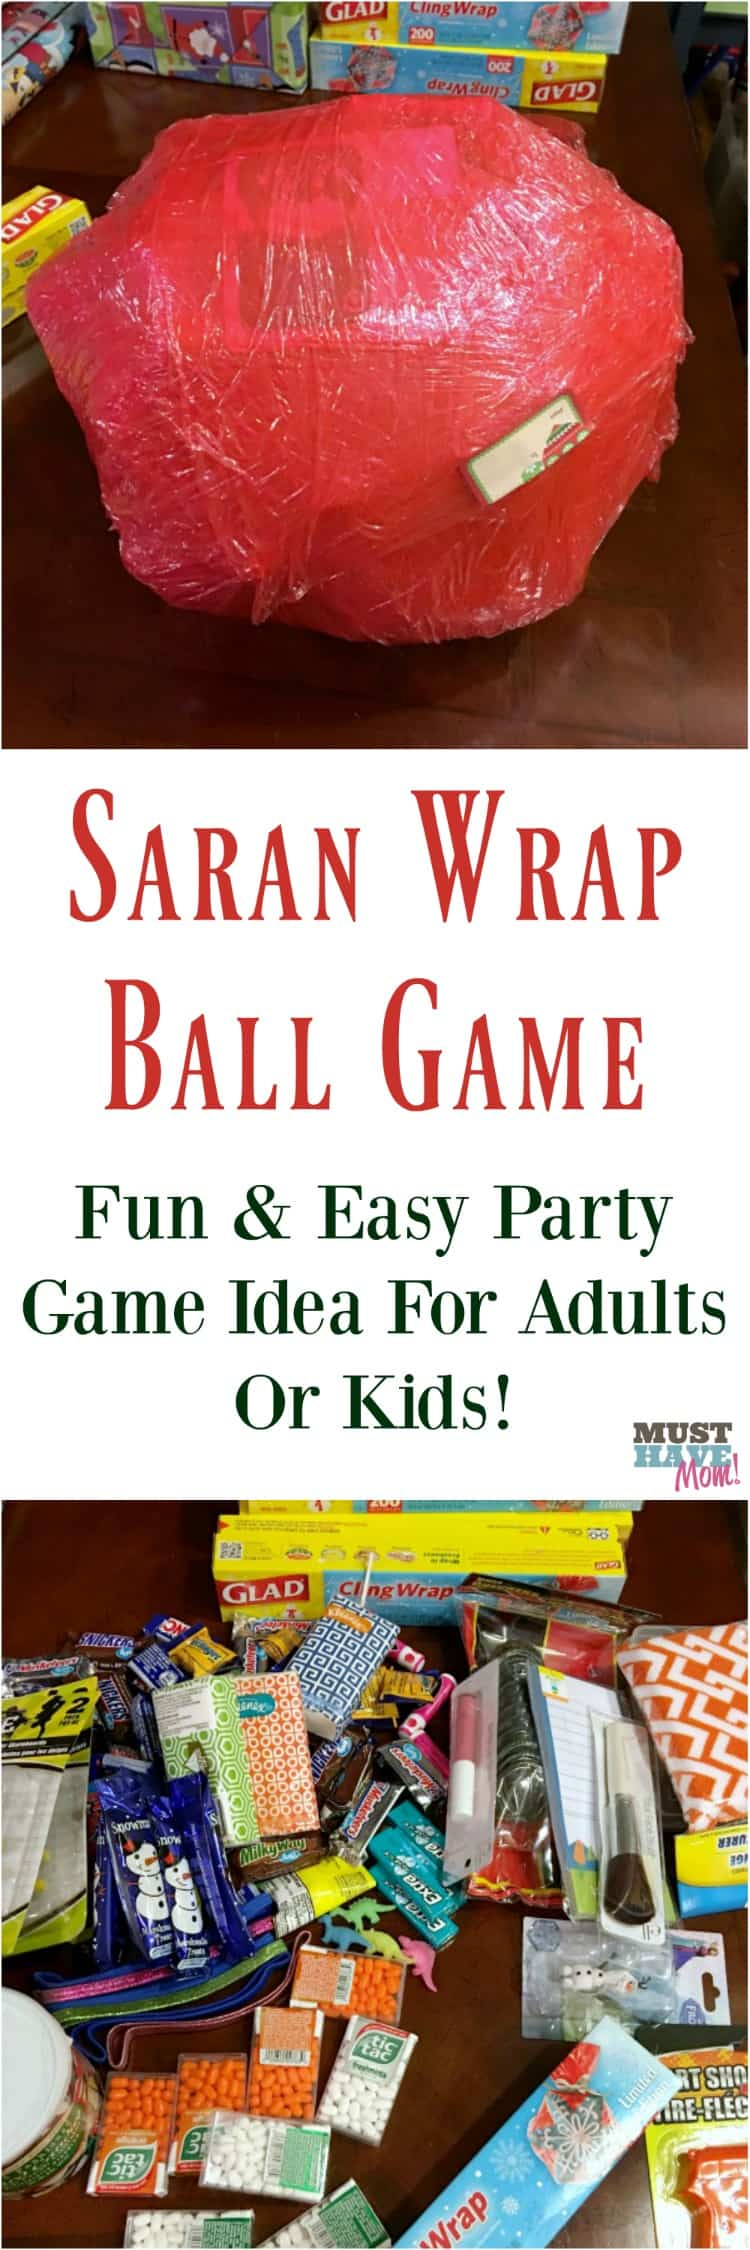 saran wrap ball game how to make and play the game for adults or kids